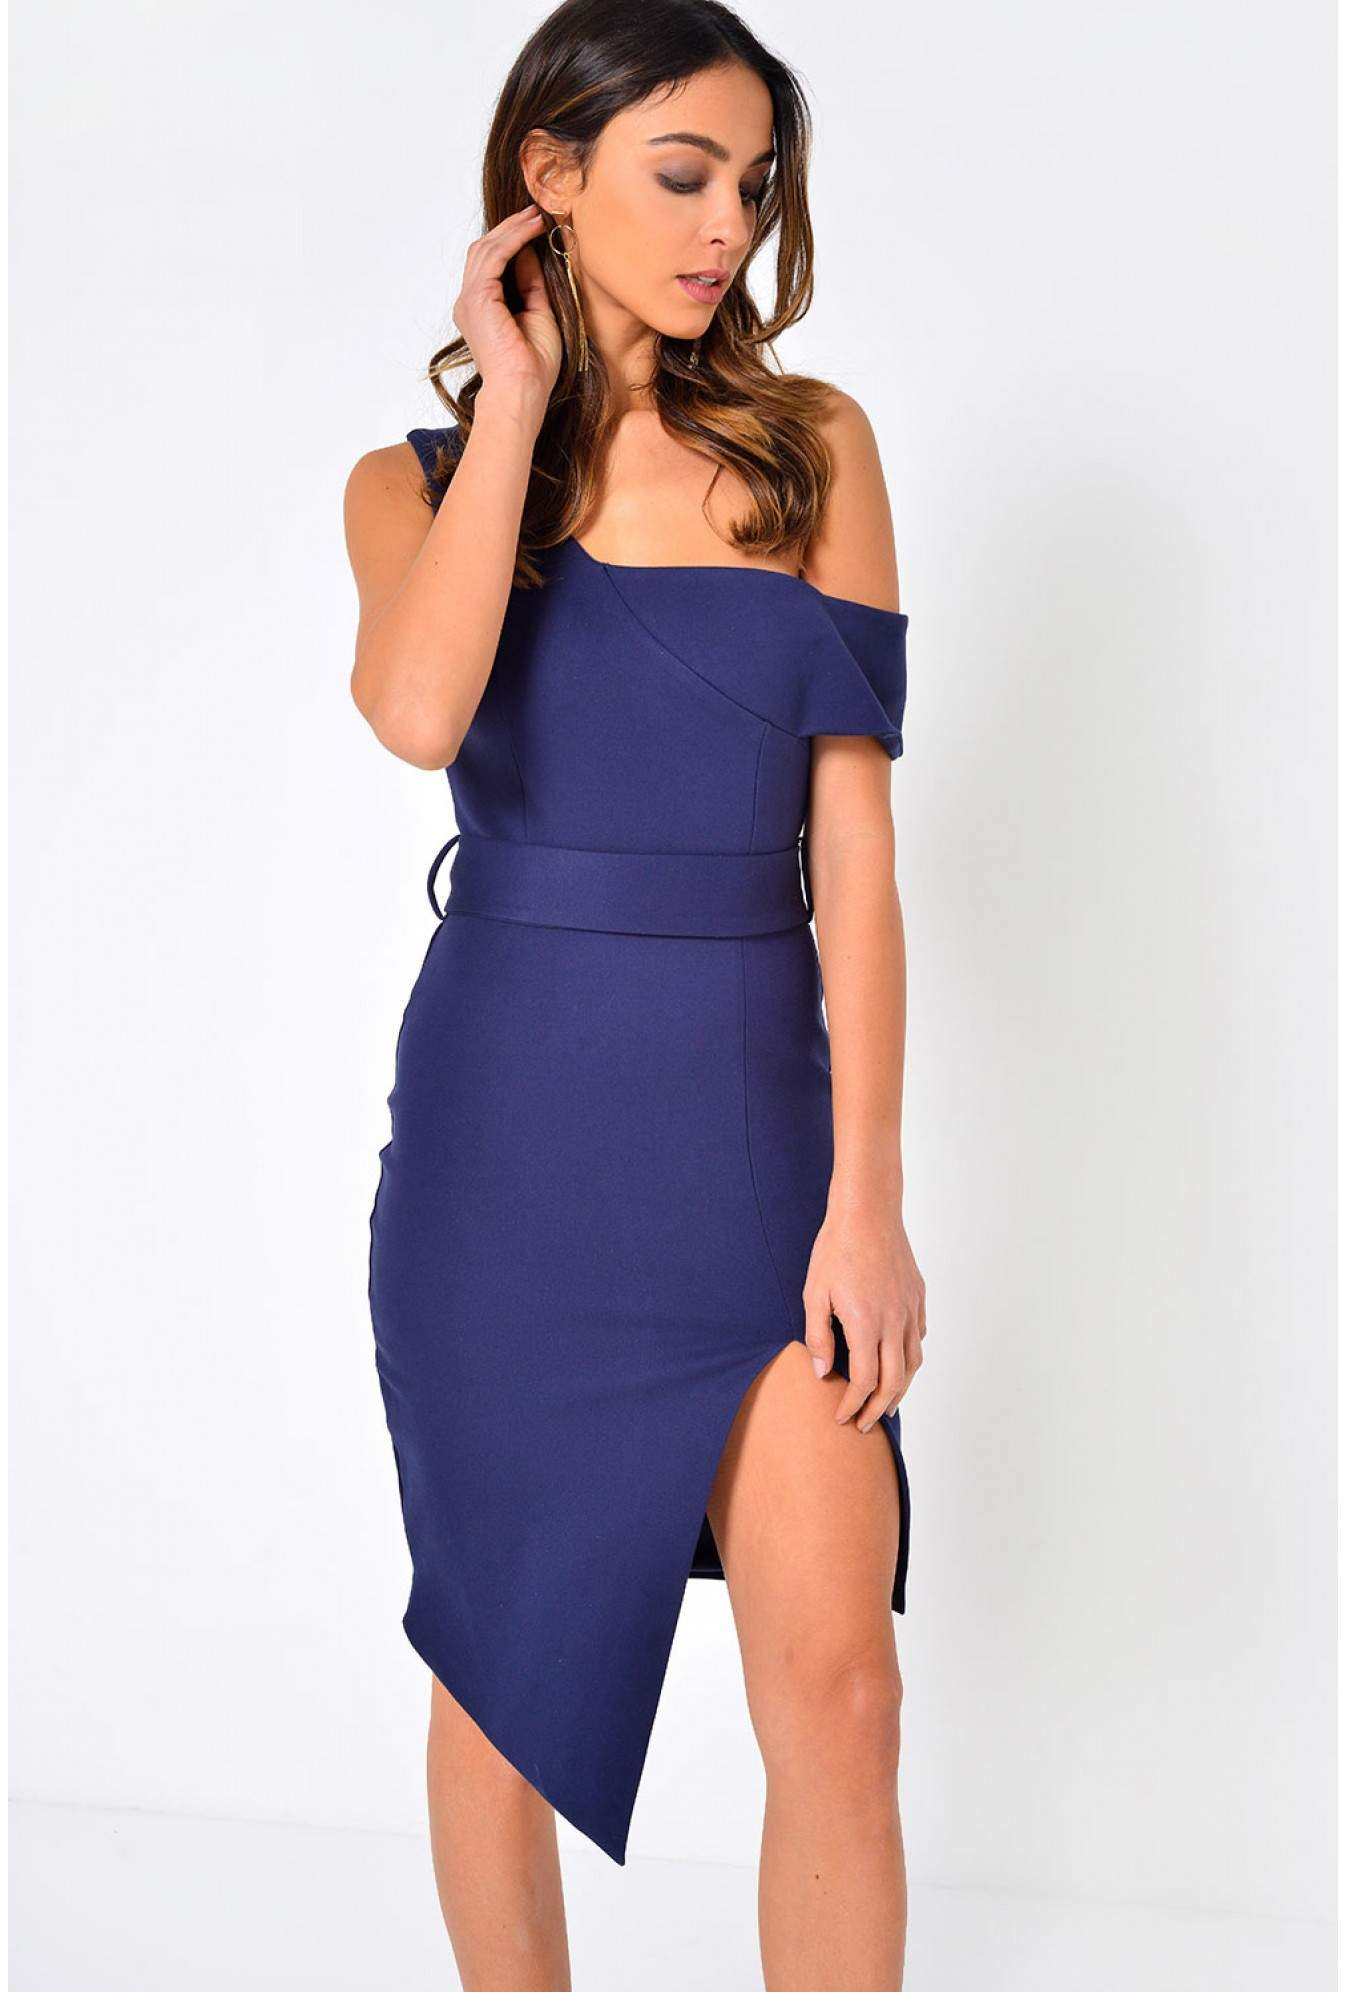 744f772b49a6 Soho Market Talia Off Shoulder Midi Dress in Navy